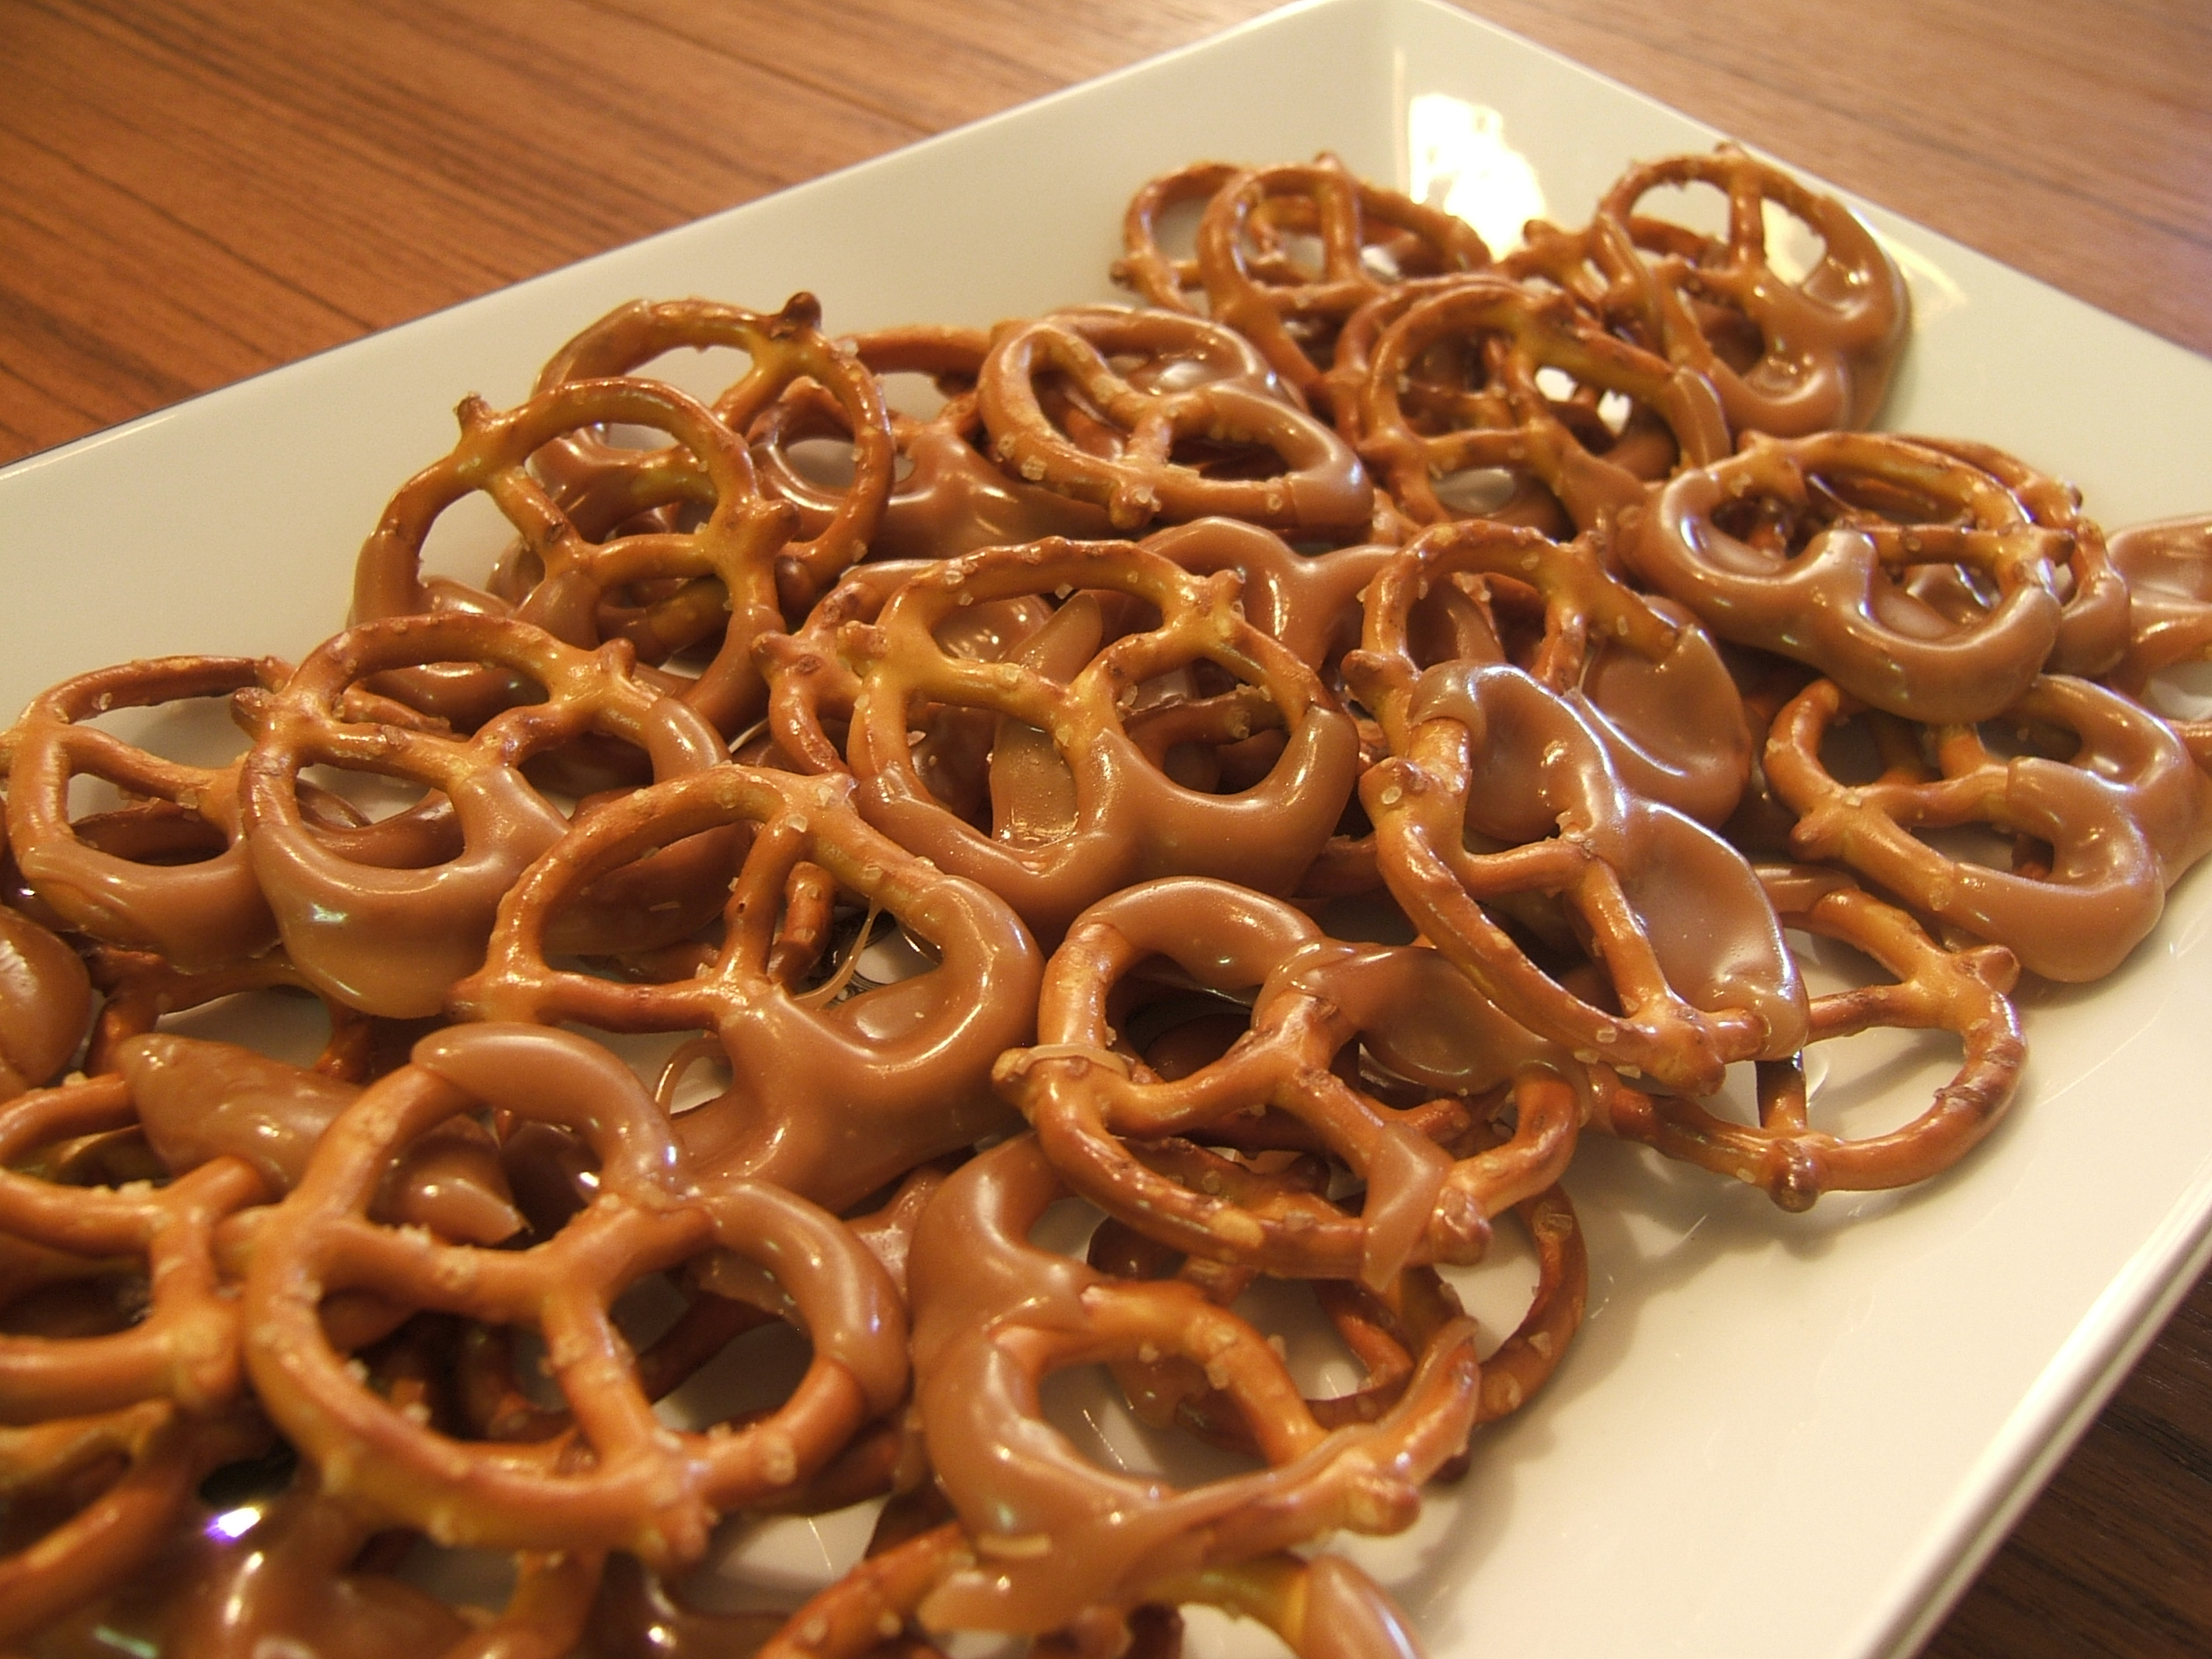 Dah-licious! Easy Toffee Pretzels | The Tamara Blog...